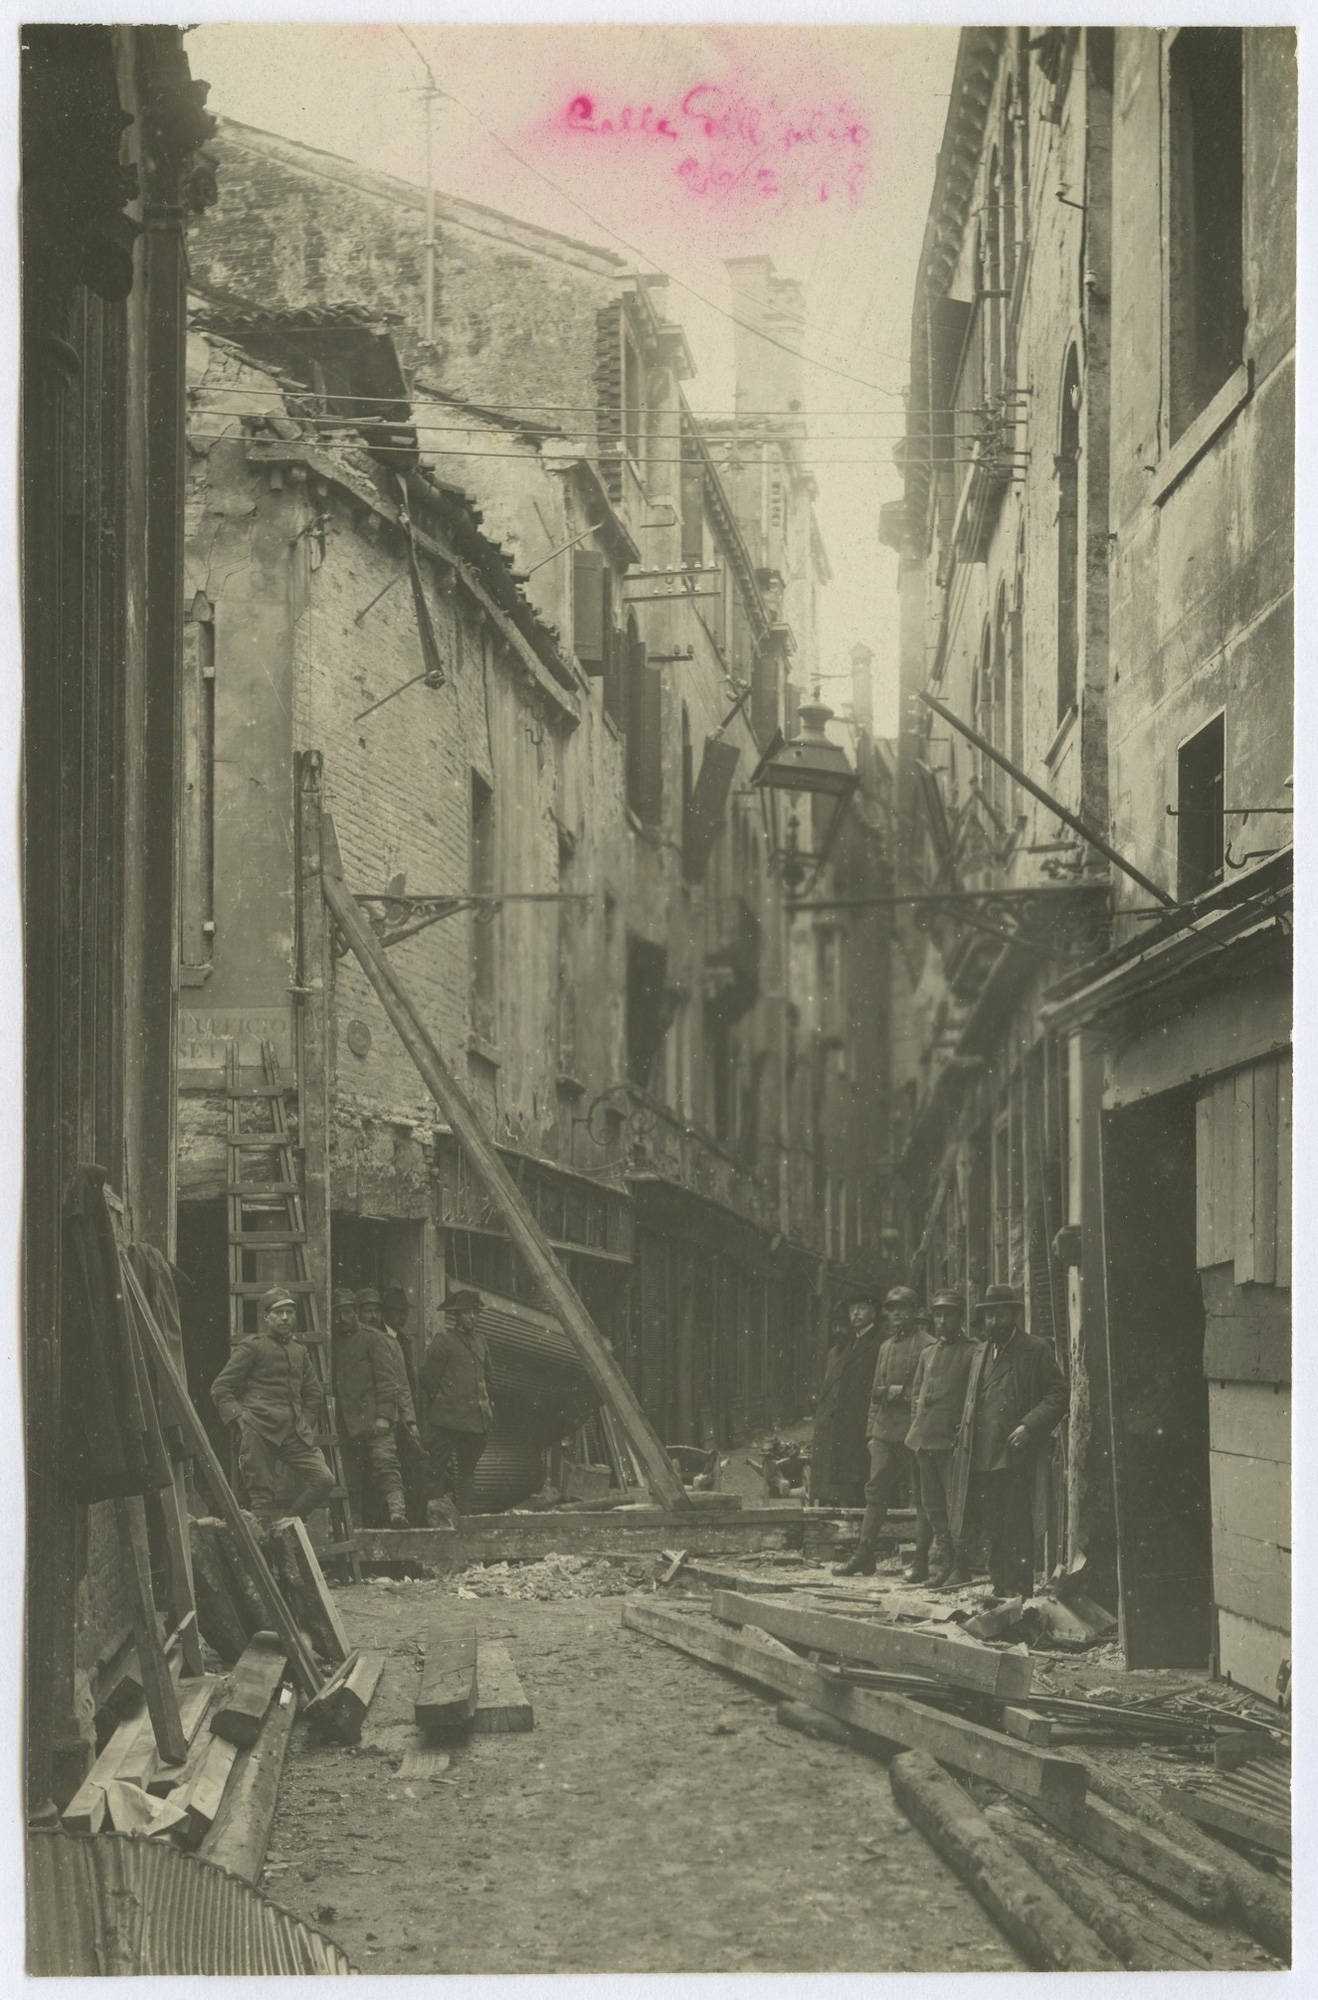 Venice: Calle dell'Olio destroyed